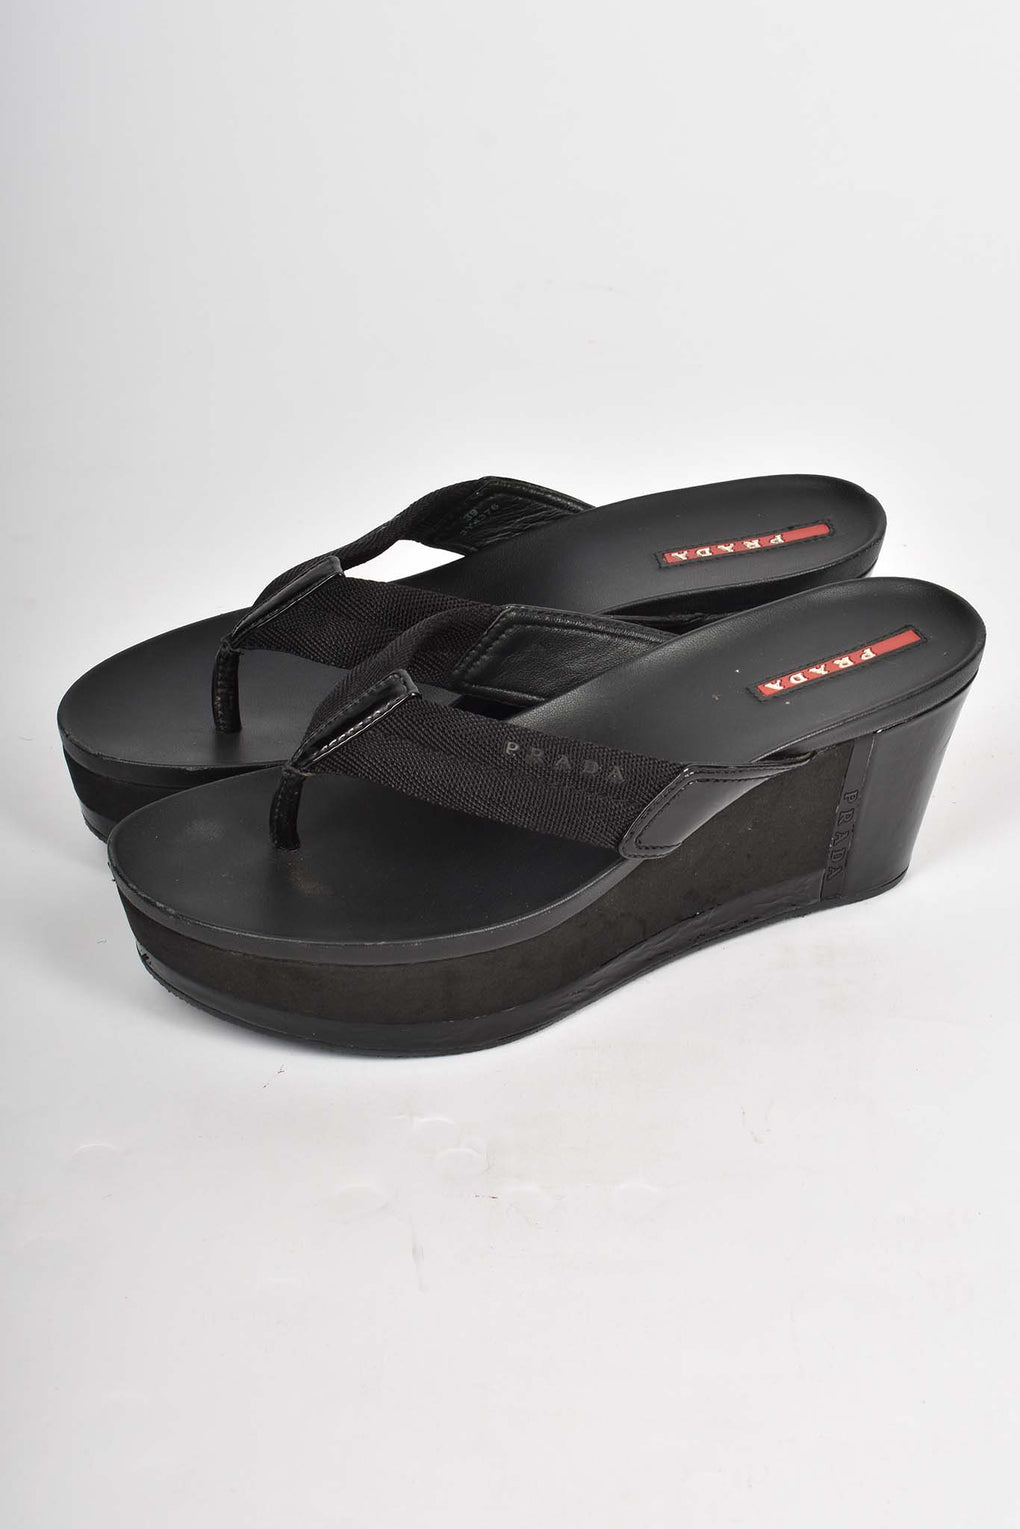 Prada black flip flop wedges